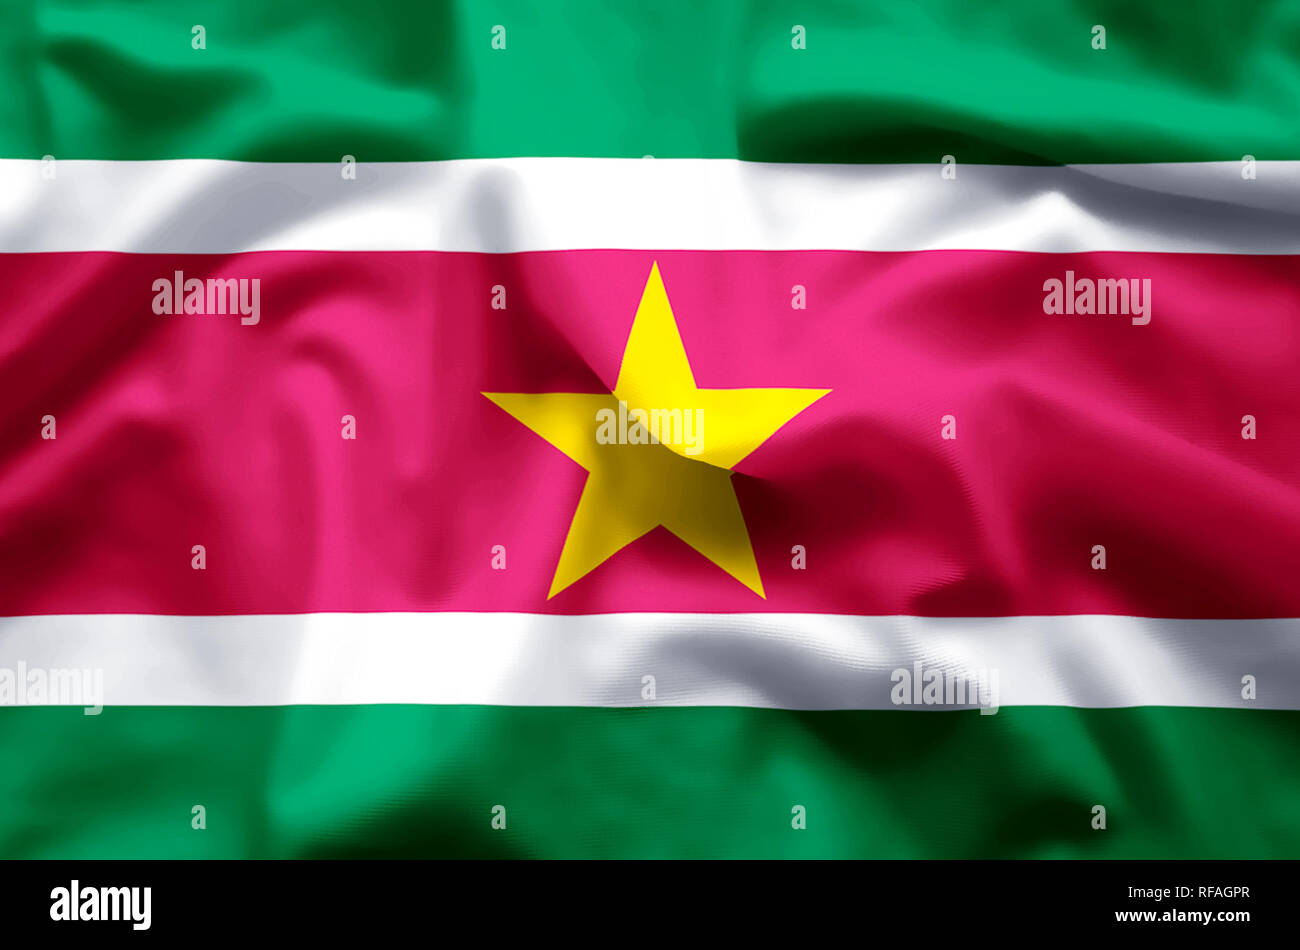 Suriname stylish waving and closeup flag illustration. Perfect for background or texture purposes. - Stock Image